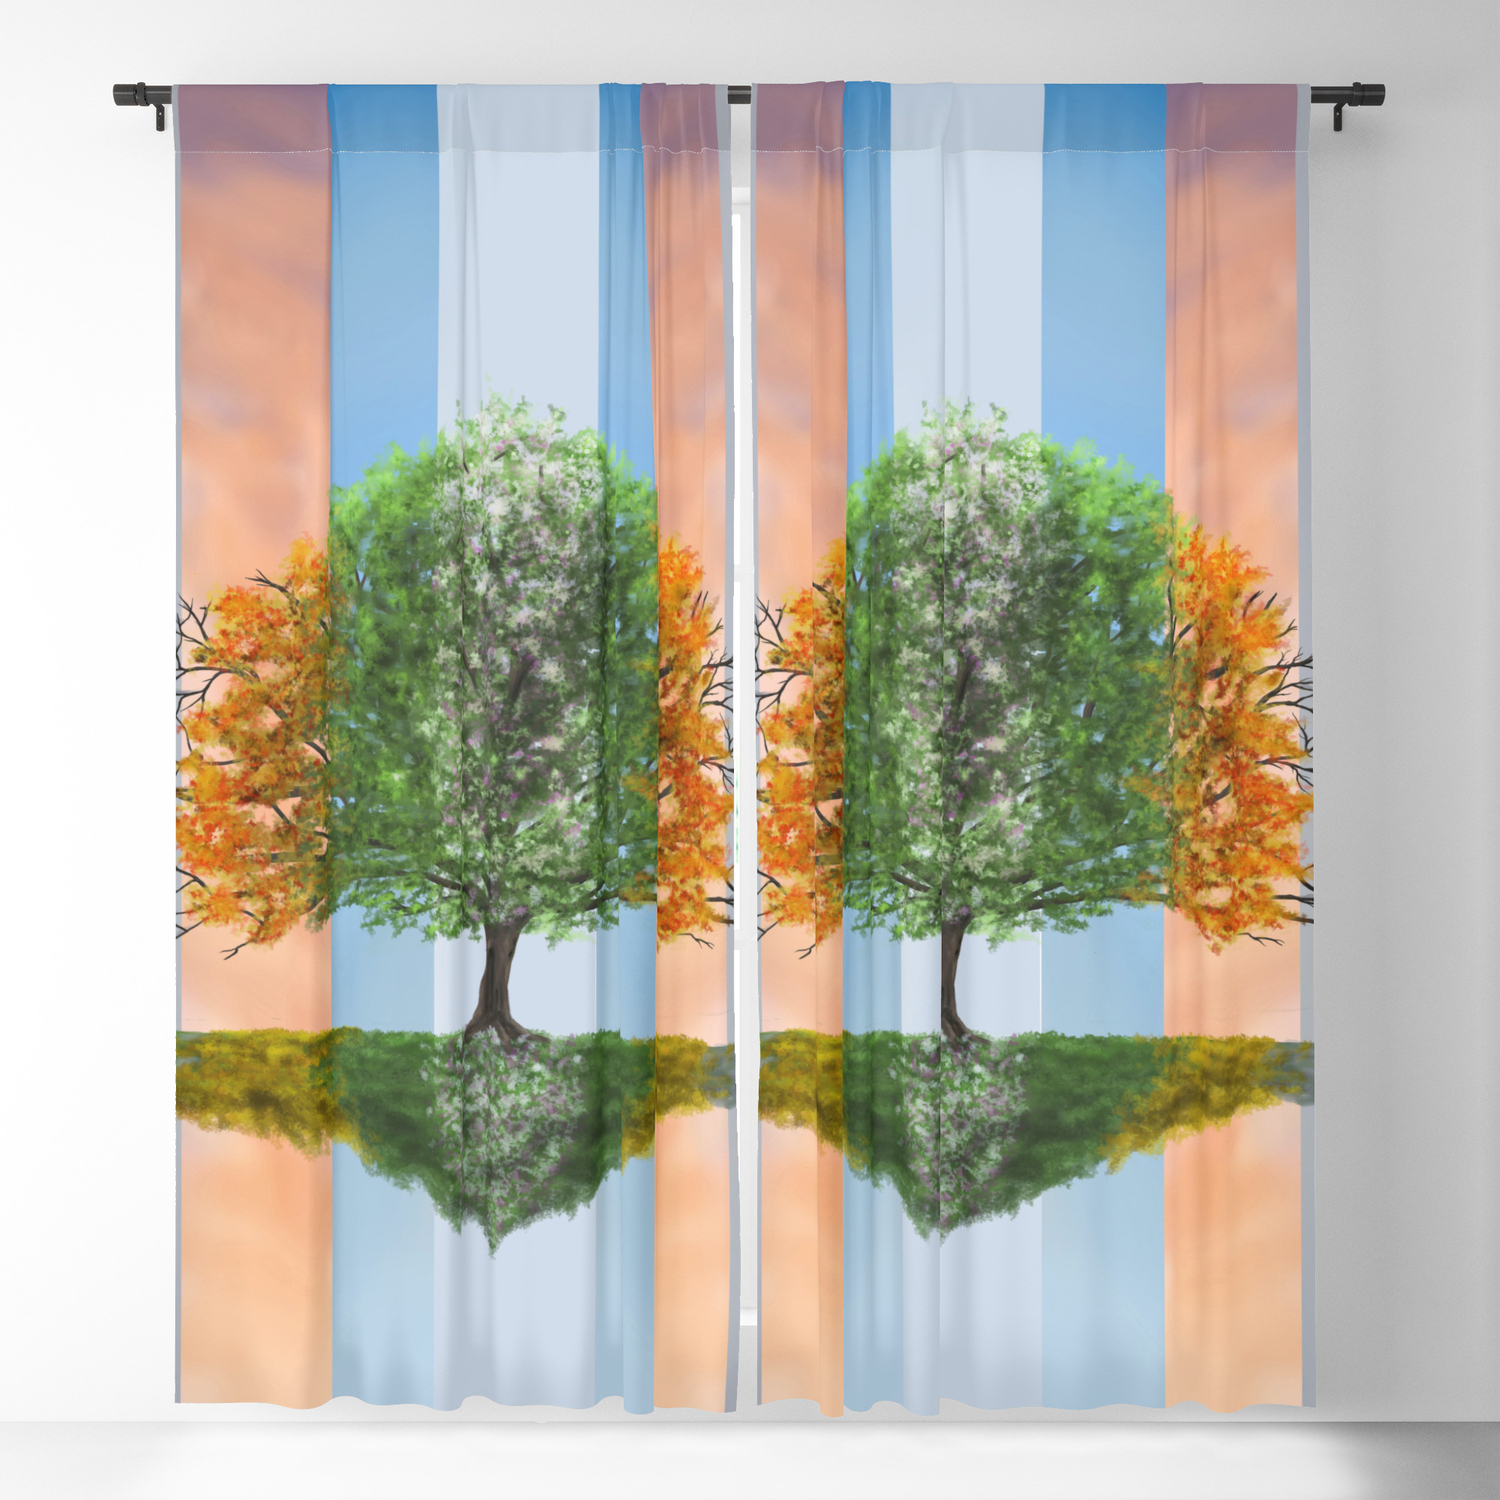 Digital Painting Of The Seasons Of The Year In A Tree Blackout Curtain Signorum Pertaining To All Seasons Blackout Window Curtains (Image 9 of 20)